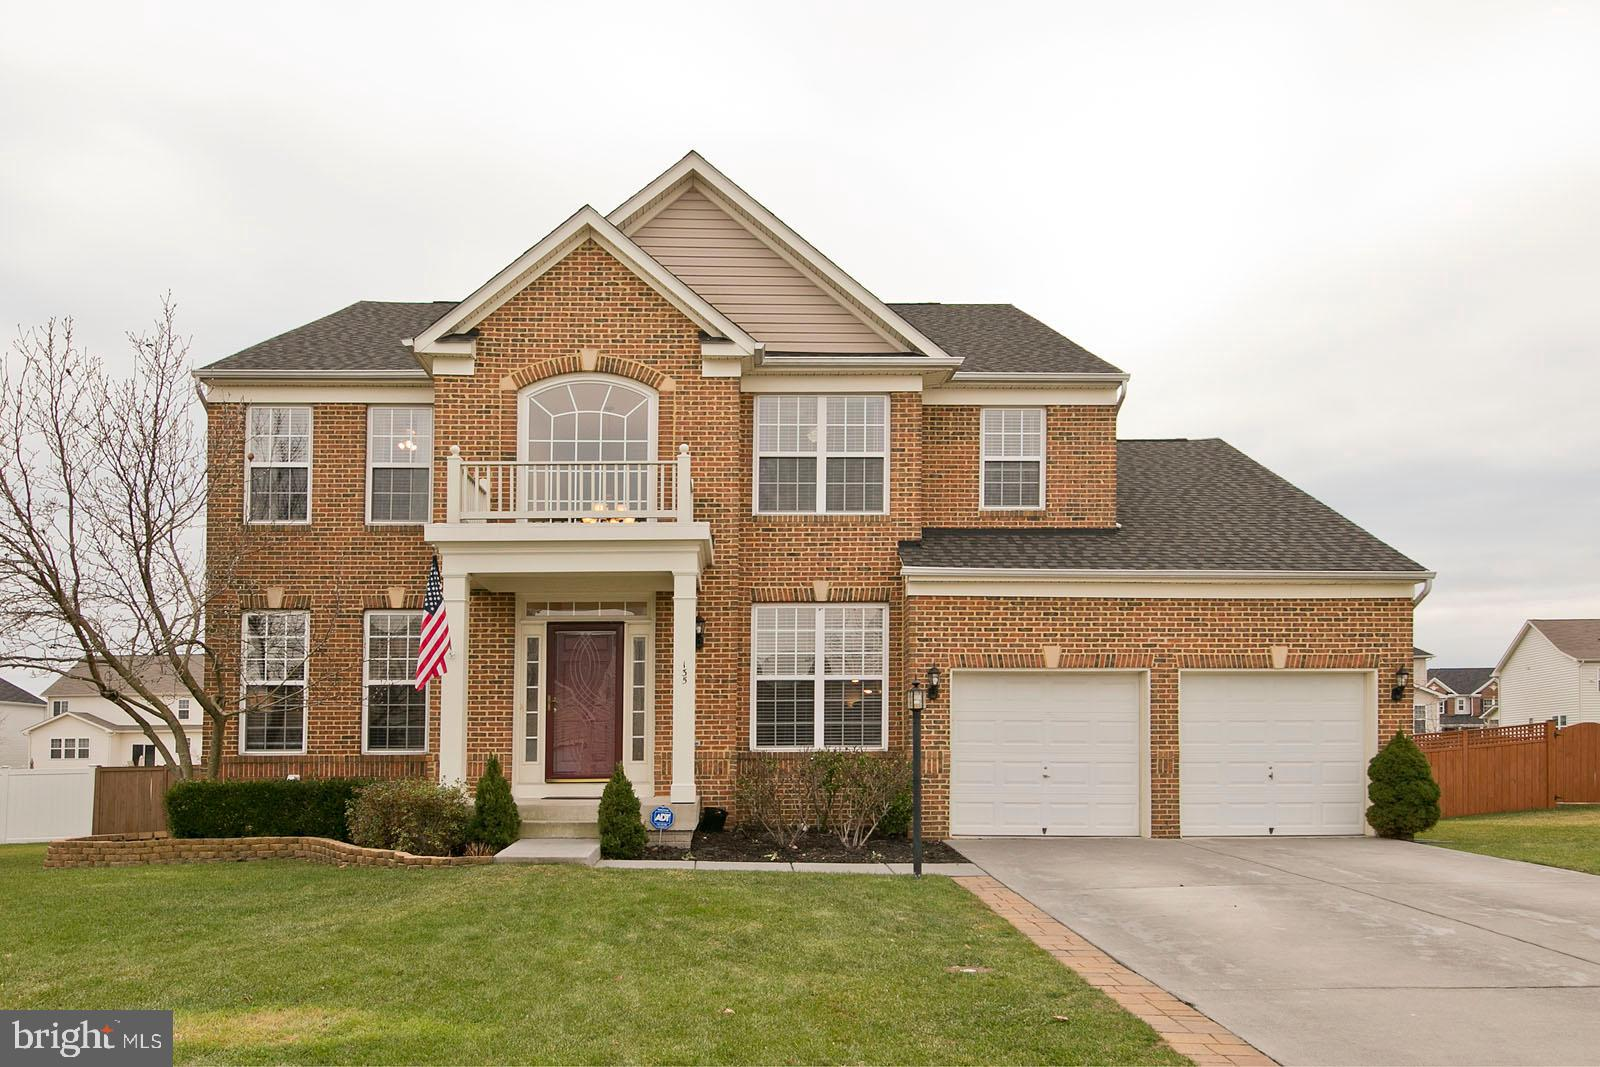 4 Bed/3.5 Bath brick front Colonial with a fenced backyard, concrete patio, and storage shed. Open f